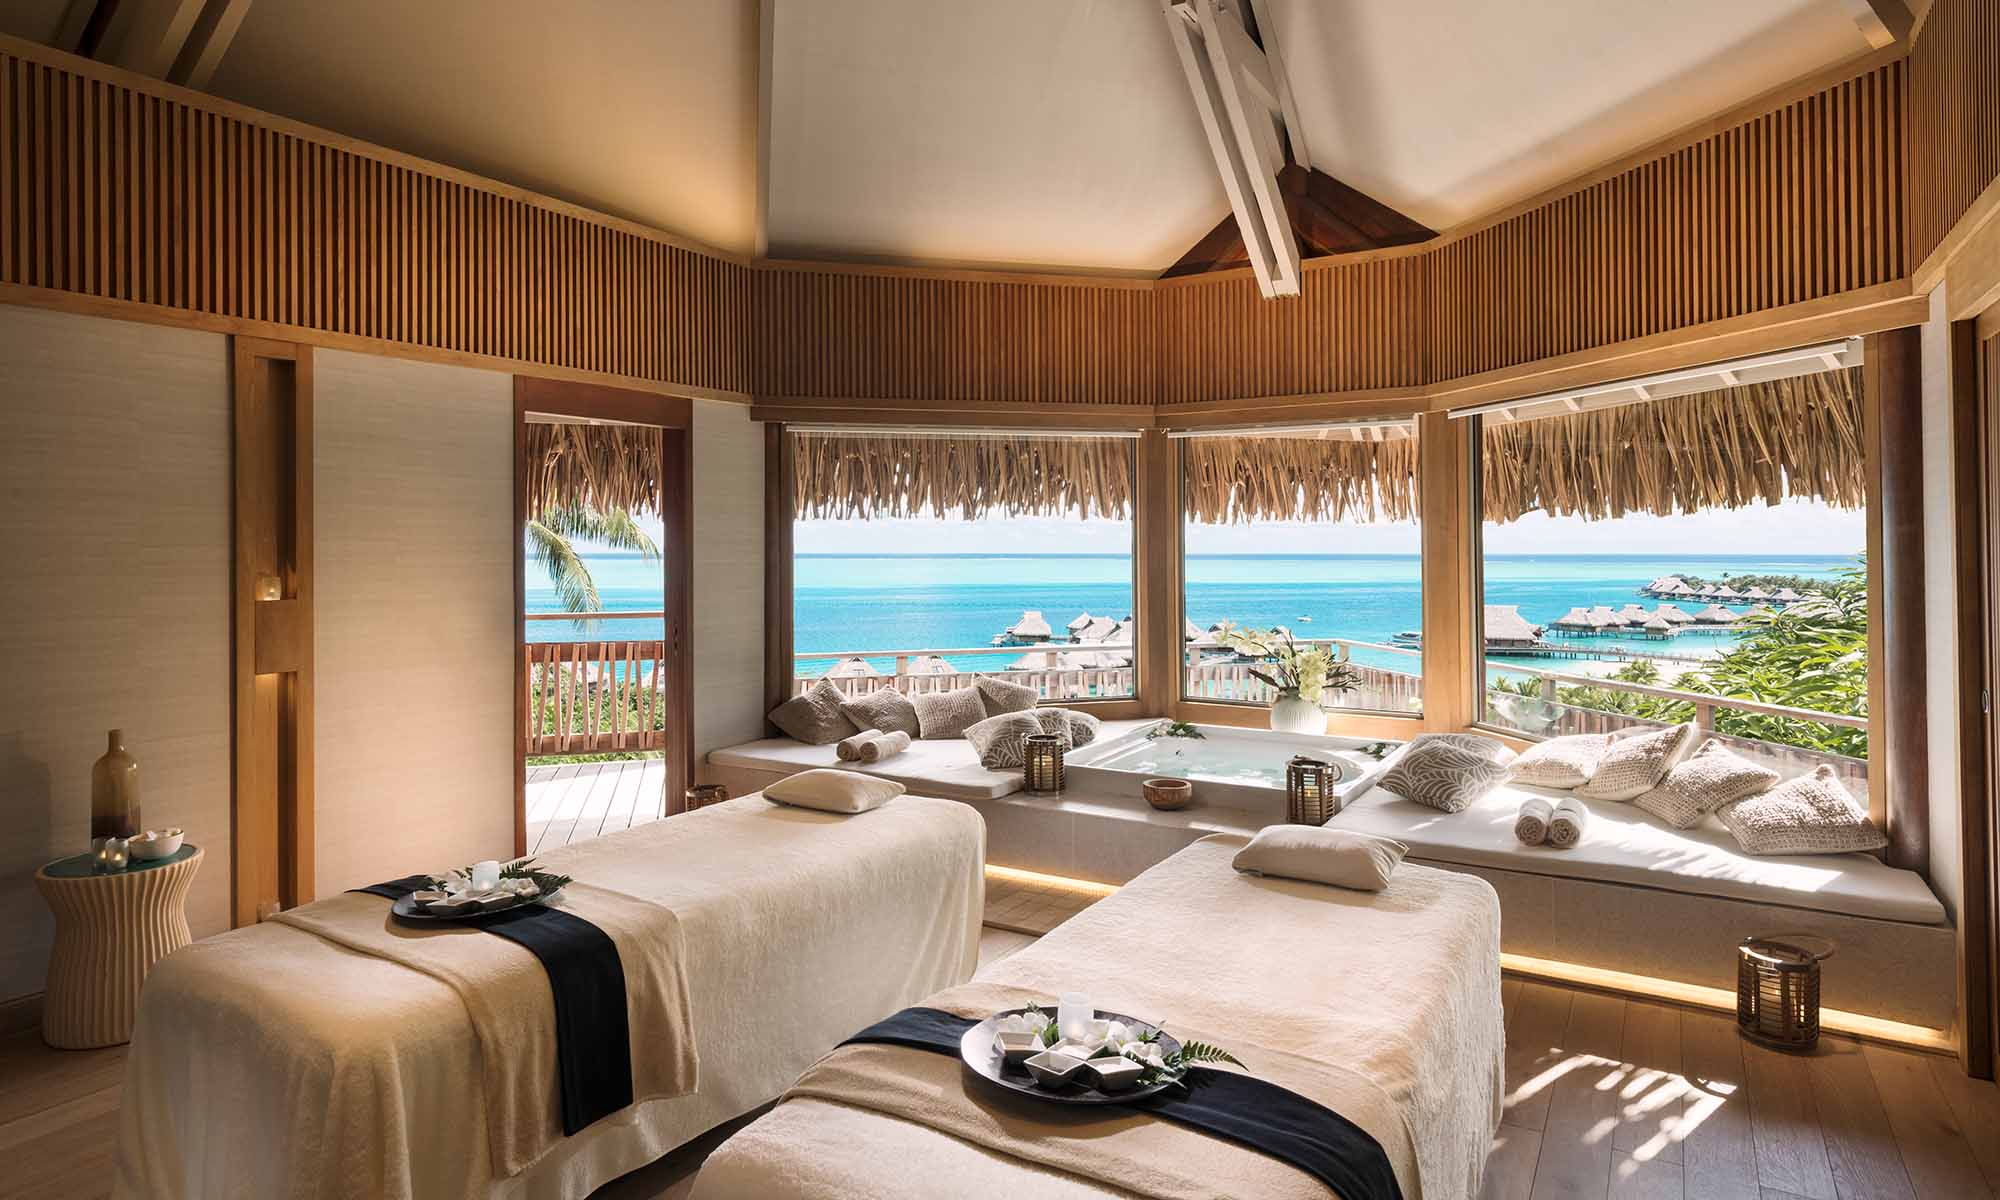 Conrad Bora Bora Nui, Hina Spa Couples Massage Treatment Room